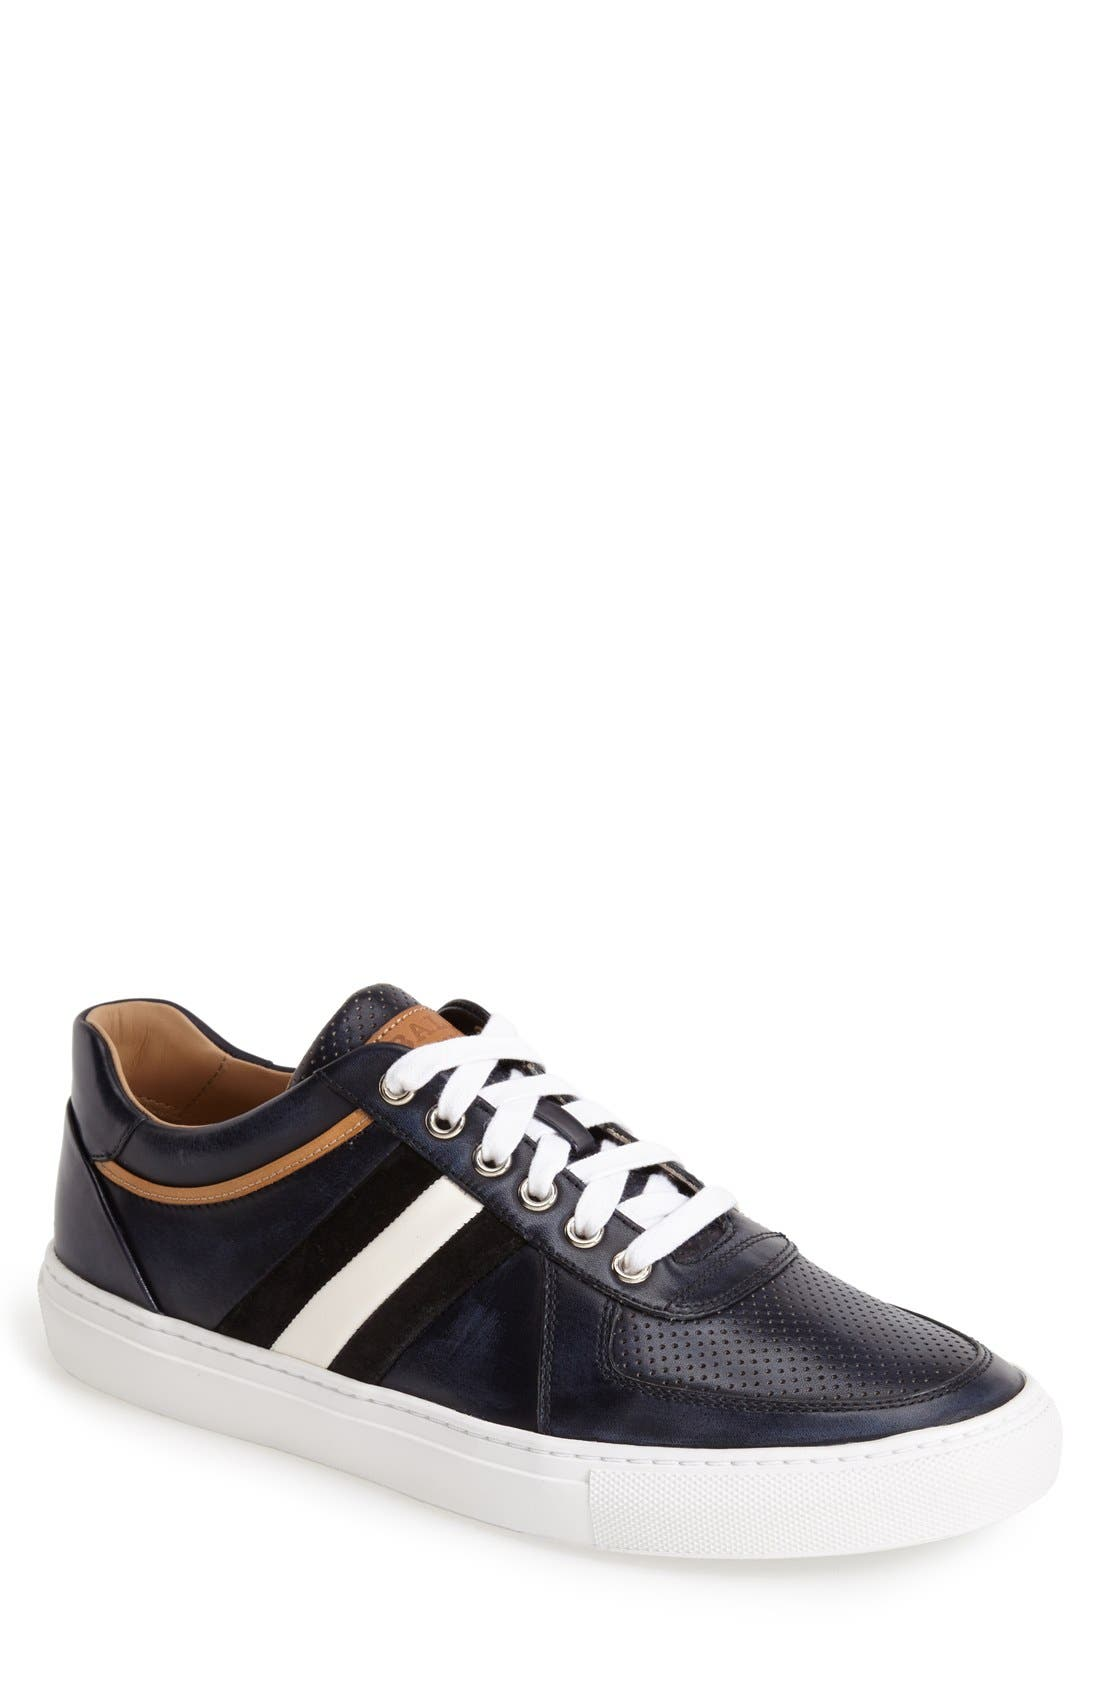 Main Image - Bally 'Heider' Leather Sneaker (Men)